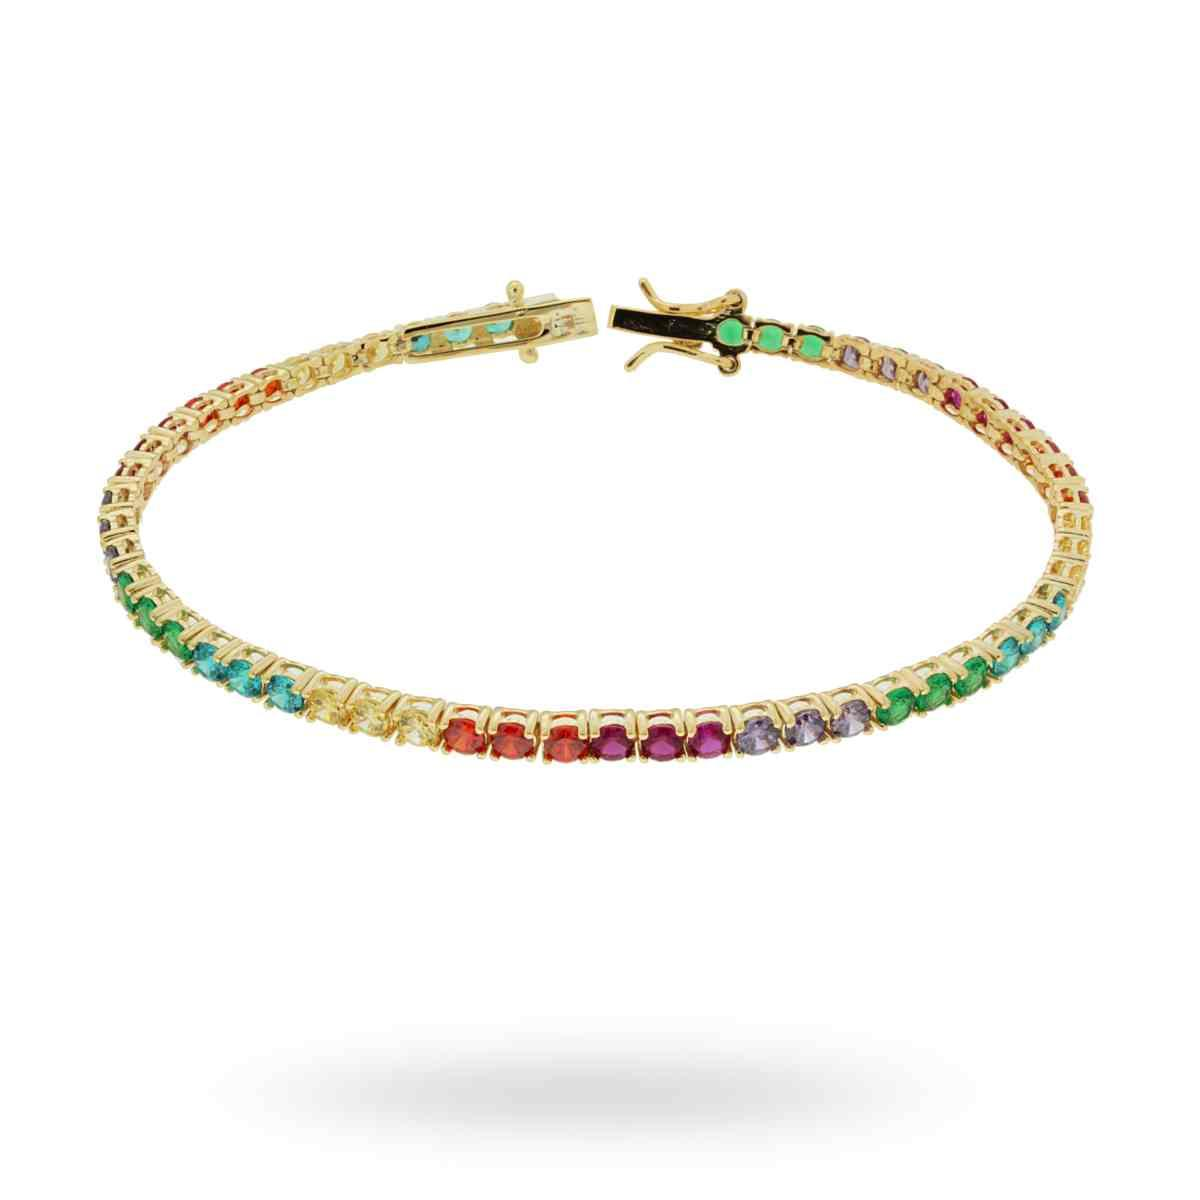 Bracciale Tennis Rainbow 4 Griffe cm 18 con Zirconi Color mm 3 in ARGENTO 925 Galvanica Oro